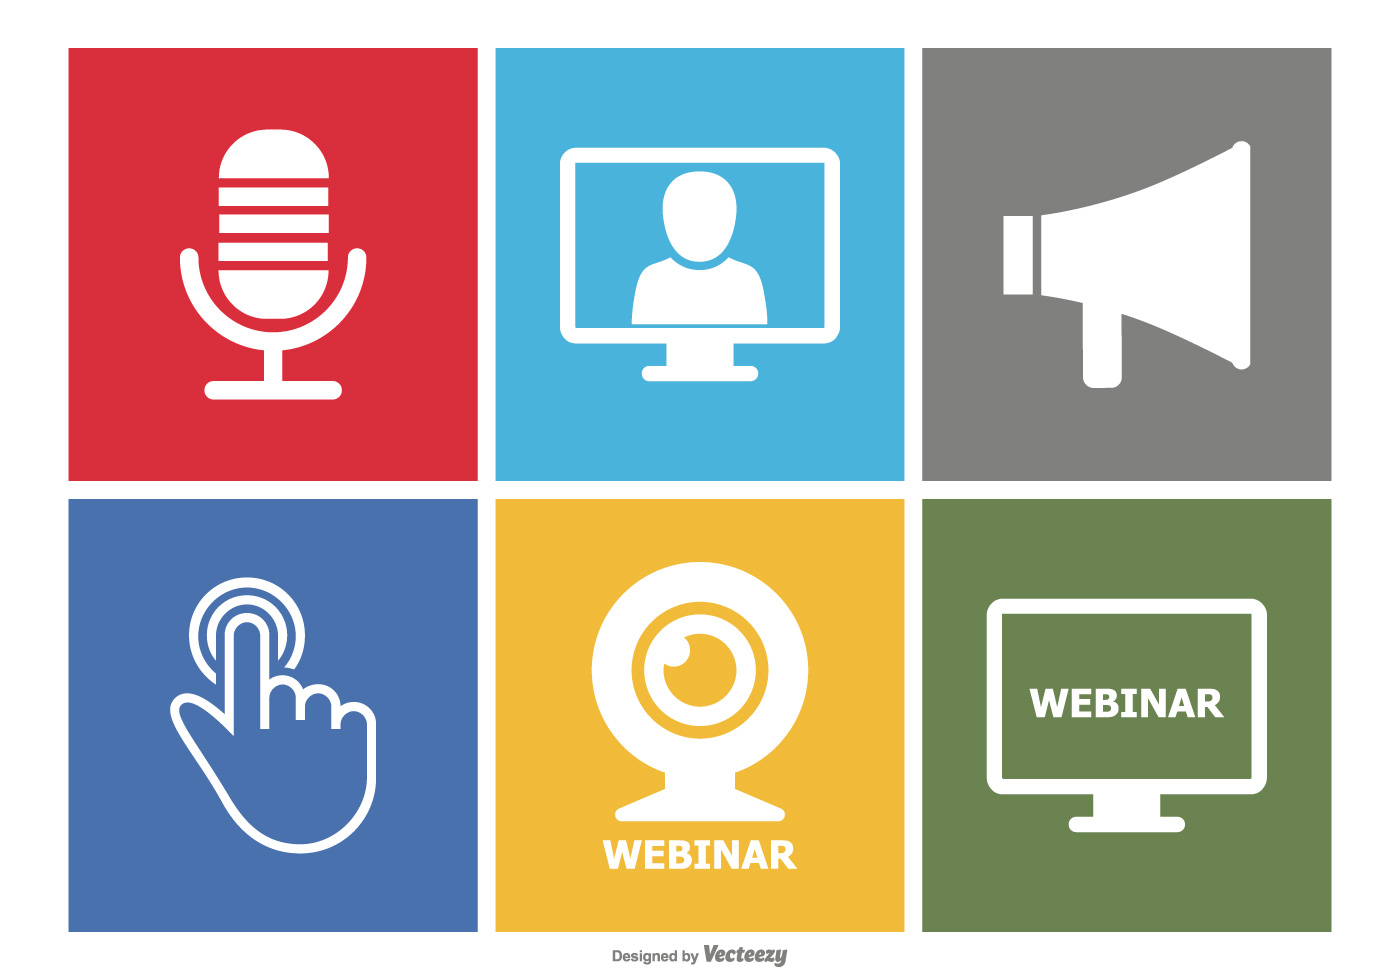 Webinar Flat Icon Set - Download Free Vector Art, Stock ...